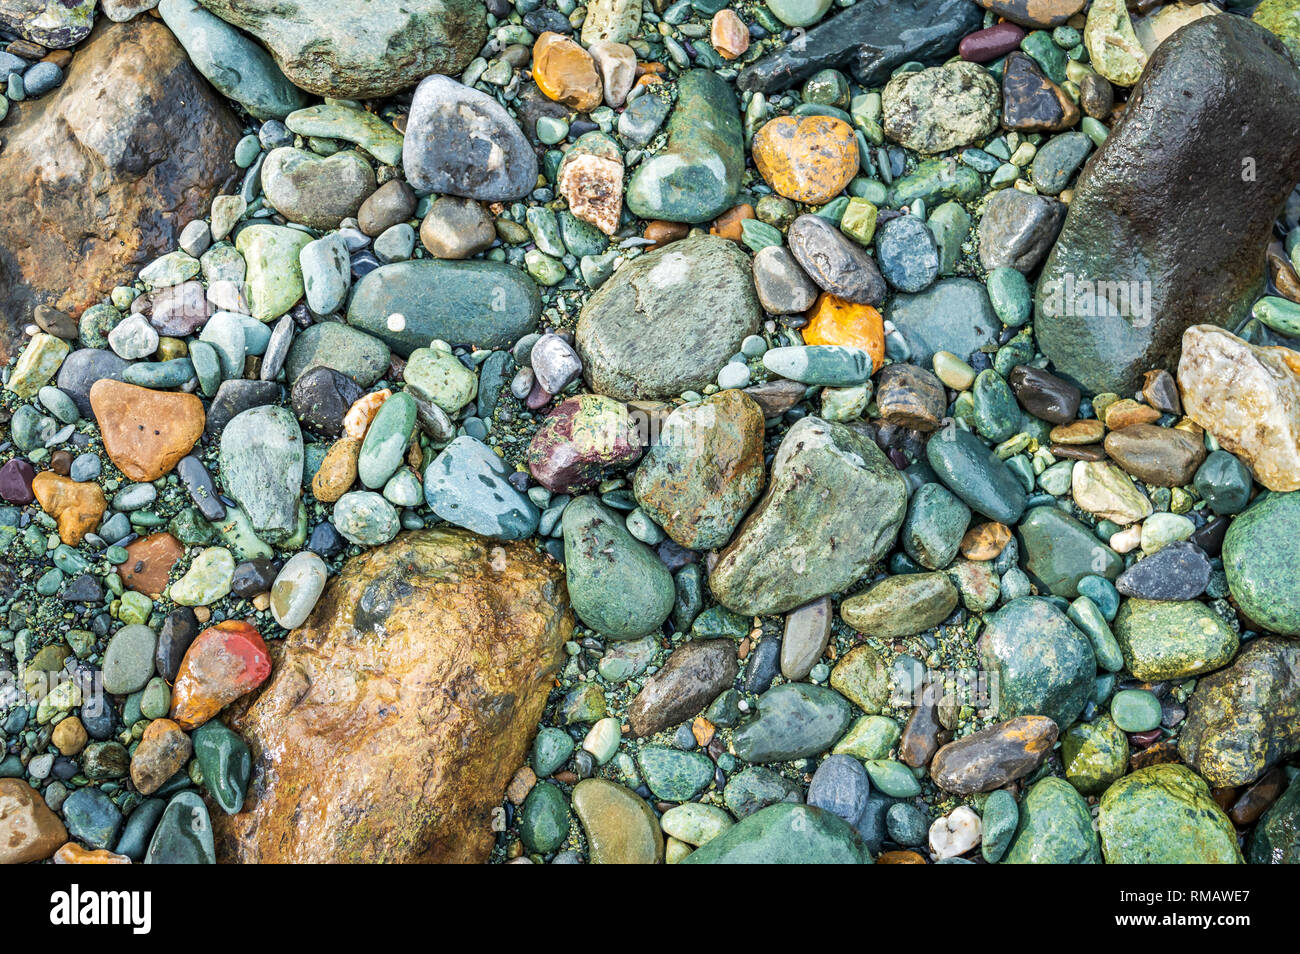 A coarse surface. Groung covered with pebbles. Rough terrain - Stock Image